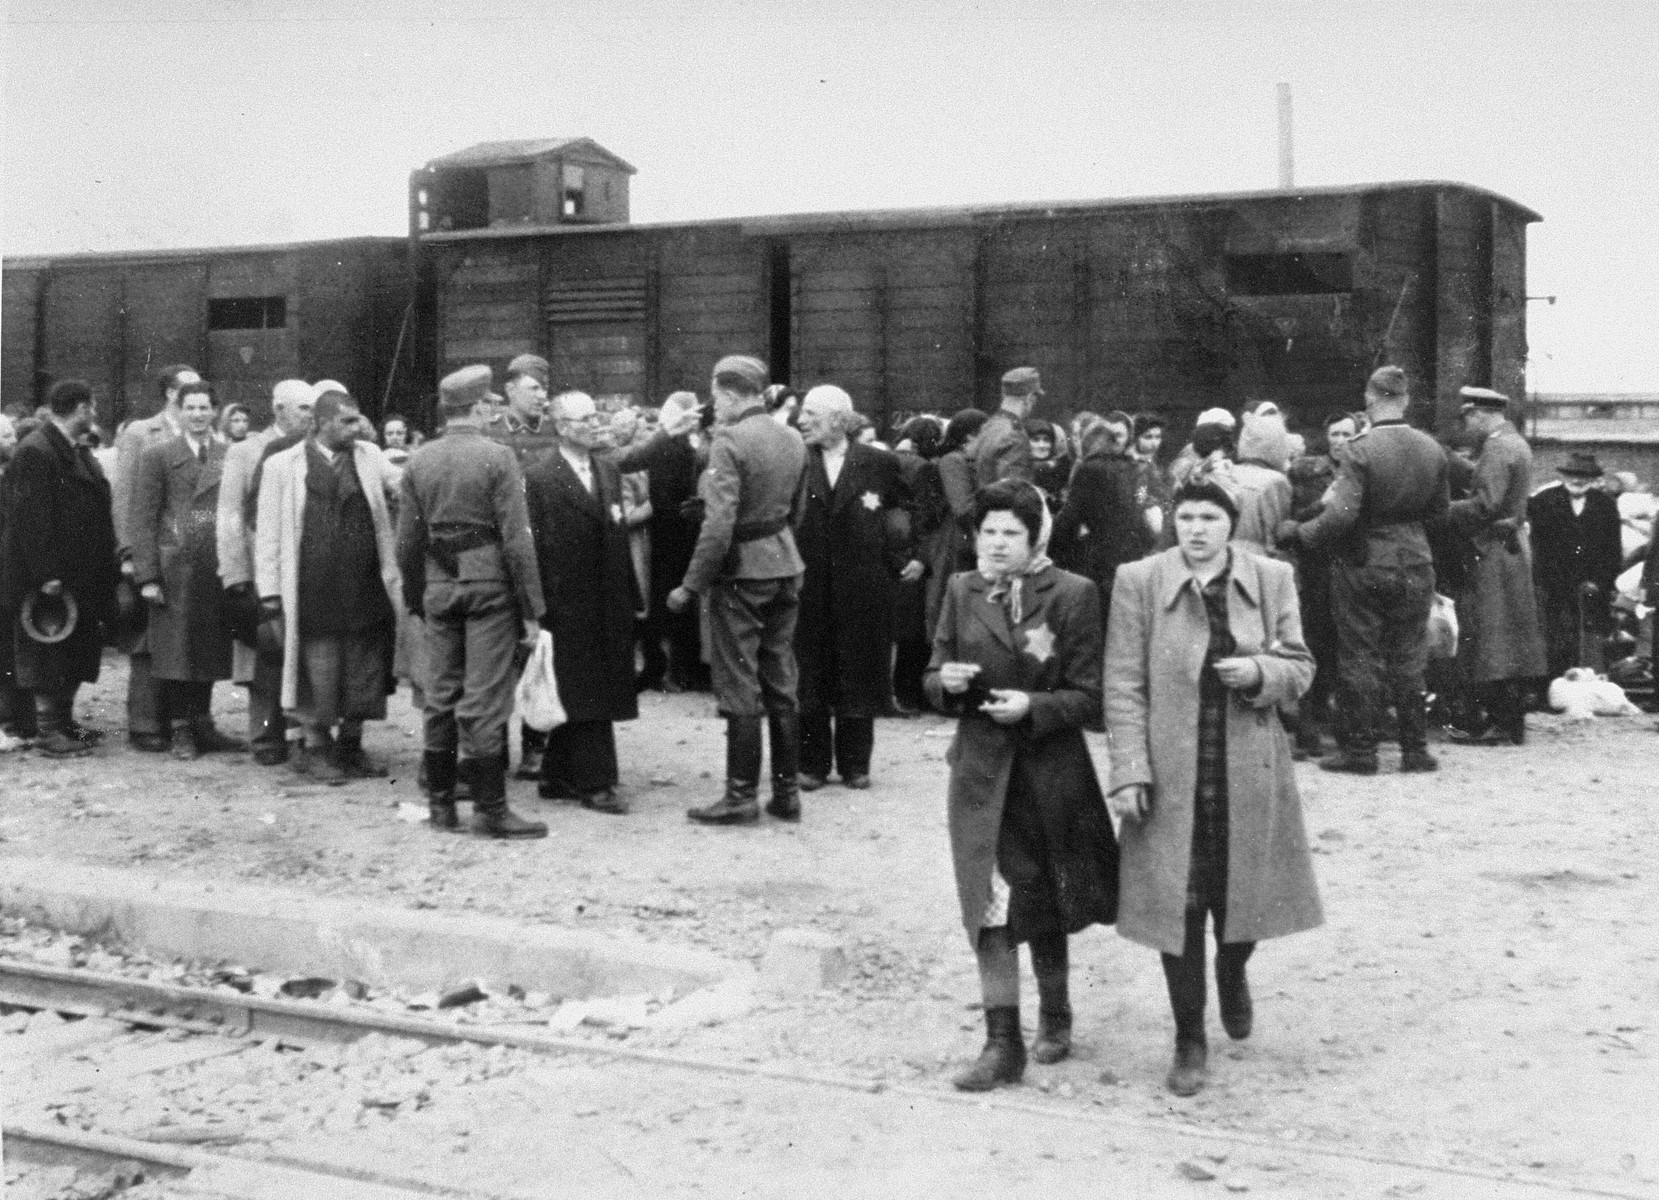 Jews from Subcarpathian Rus undergo a selection on the ramp at Auschwitz-Birkenau.